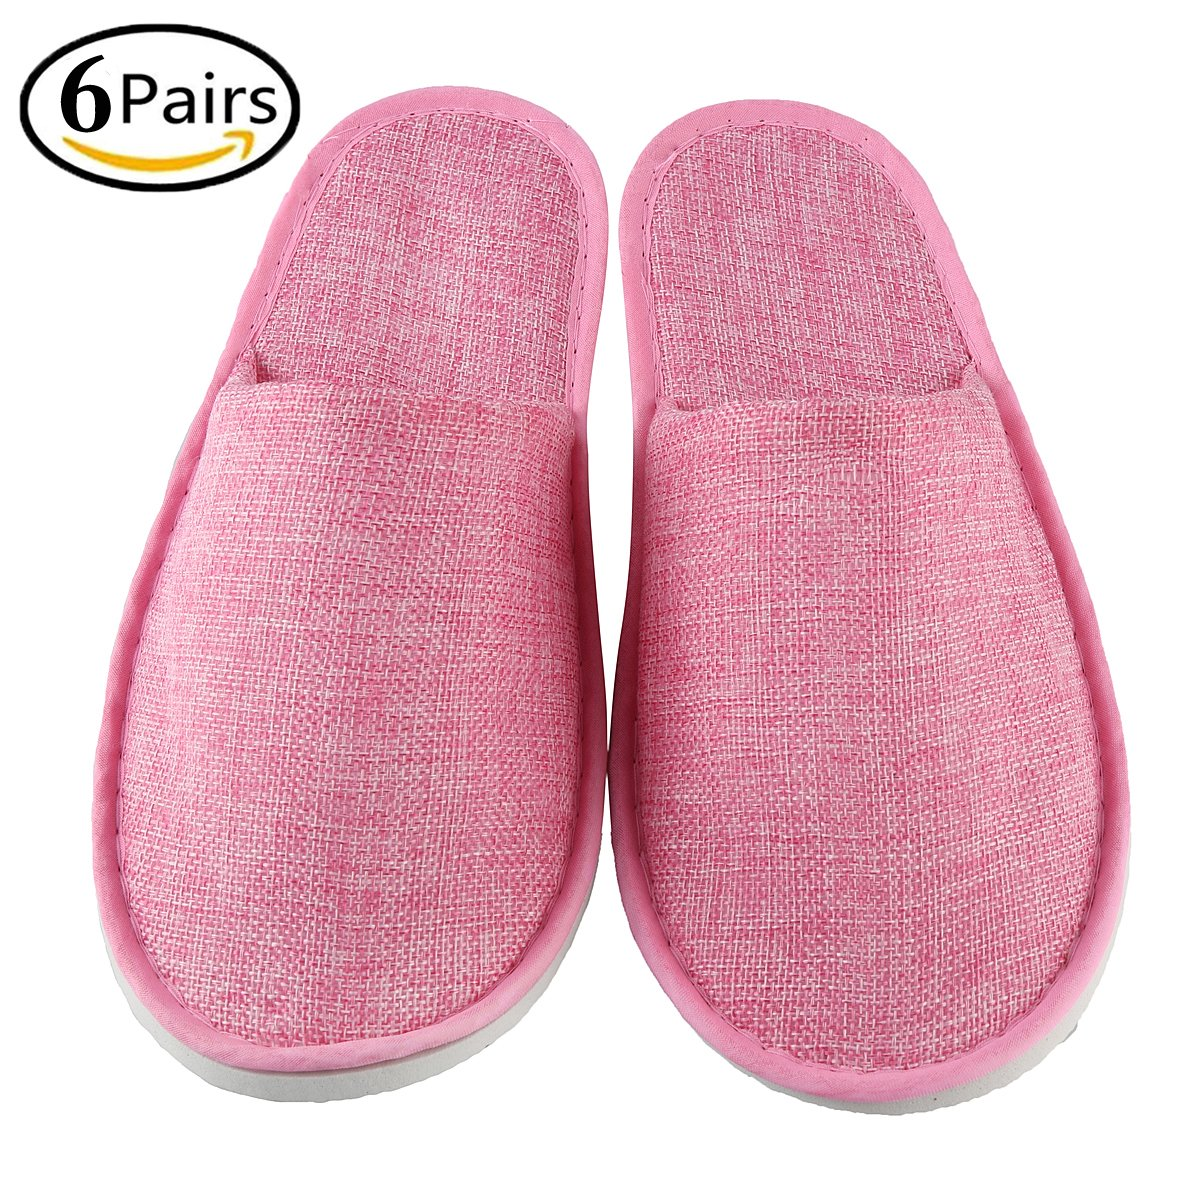 Xiaofeisi Spa Slippers 6 Pairs Unisex Comfortable Closed Toe Non-Slip Disposable Slippers for Men & Women, Perfect for Home, Hotel Or Commercial Bulk Use Linen Pink